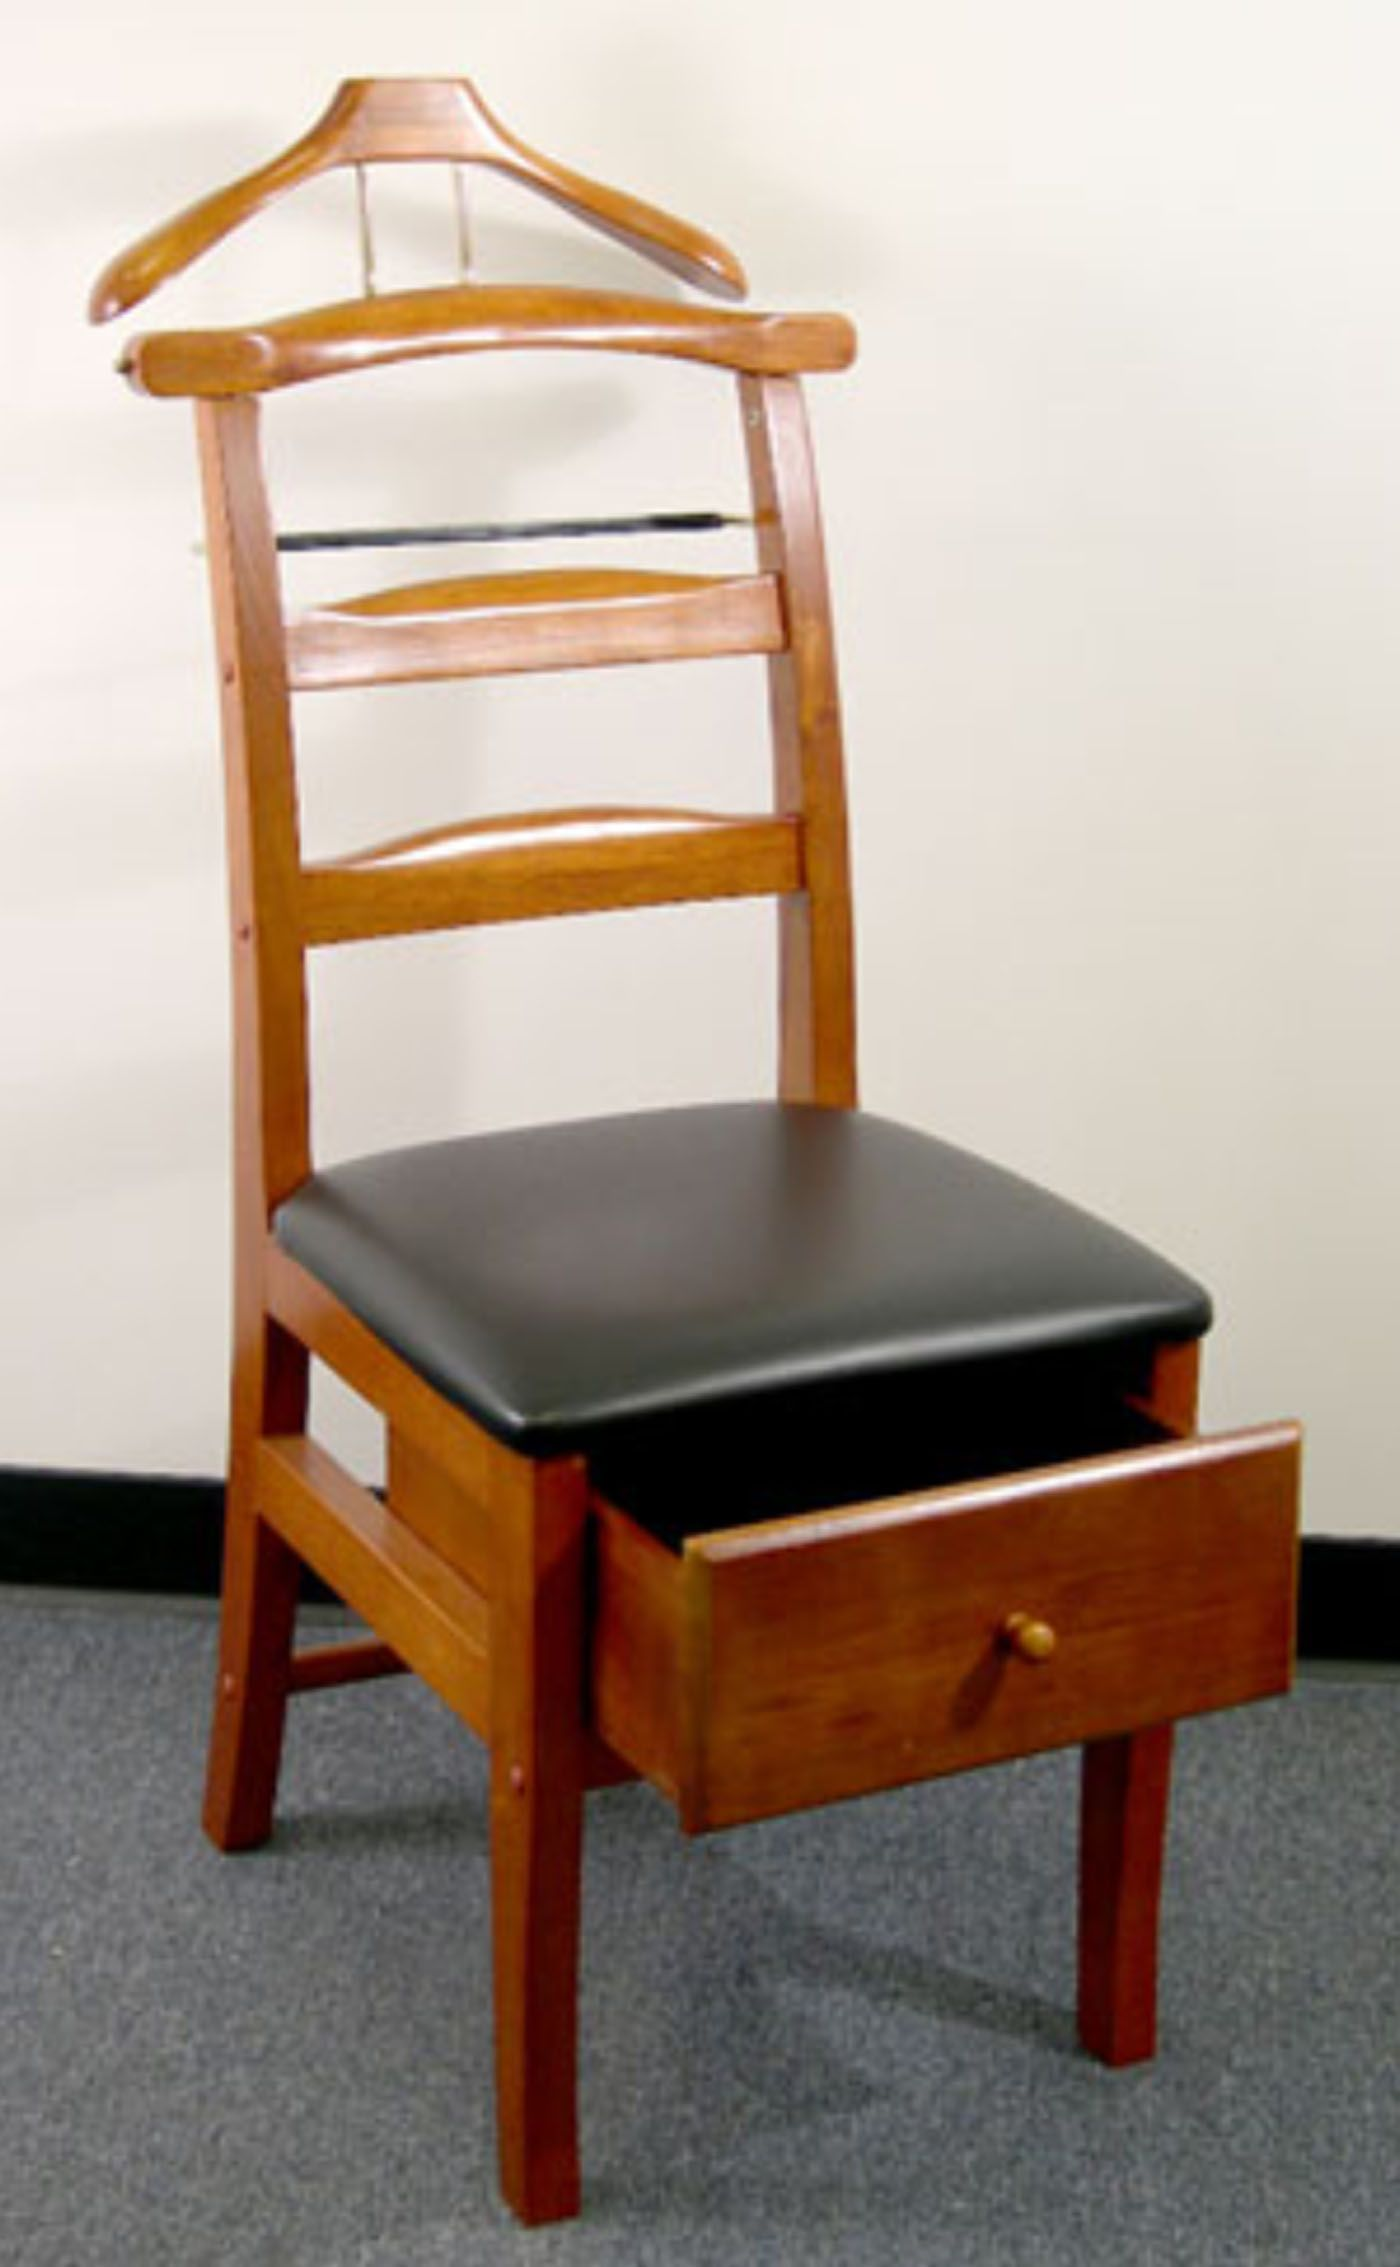 mens valet chair booster high chairs pin by organize it on blogs news sales